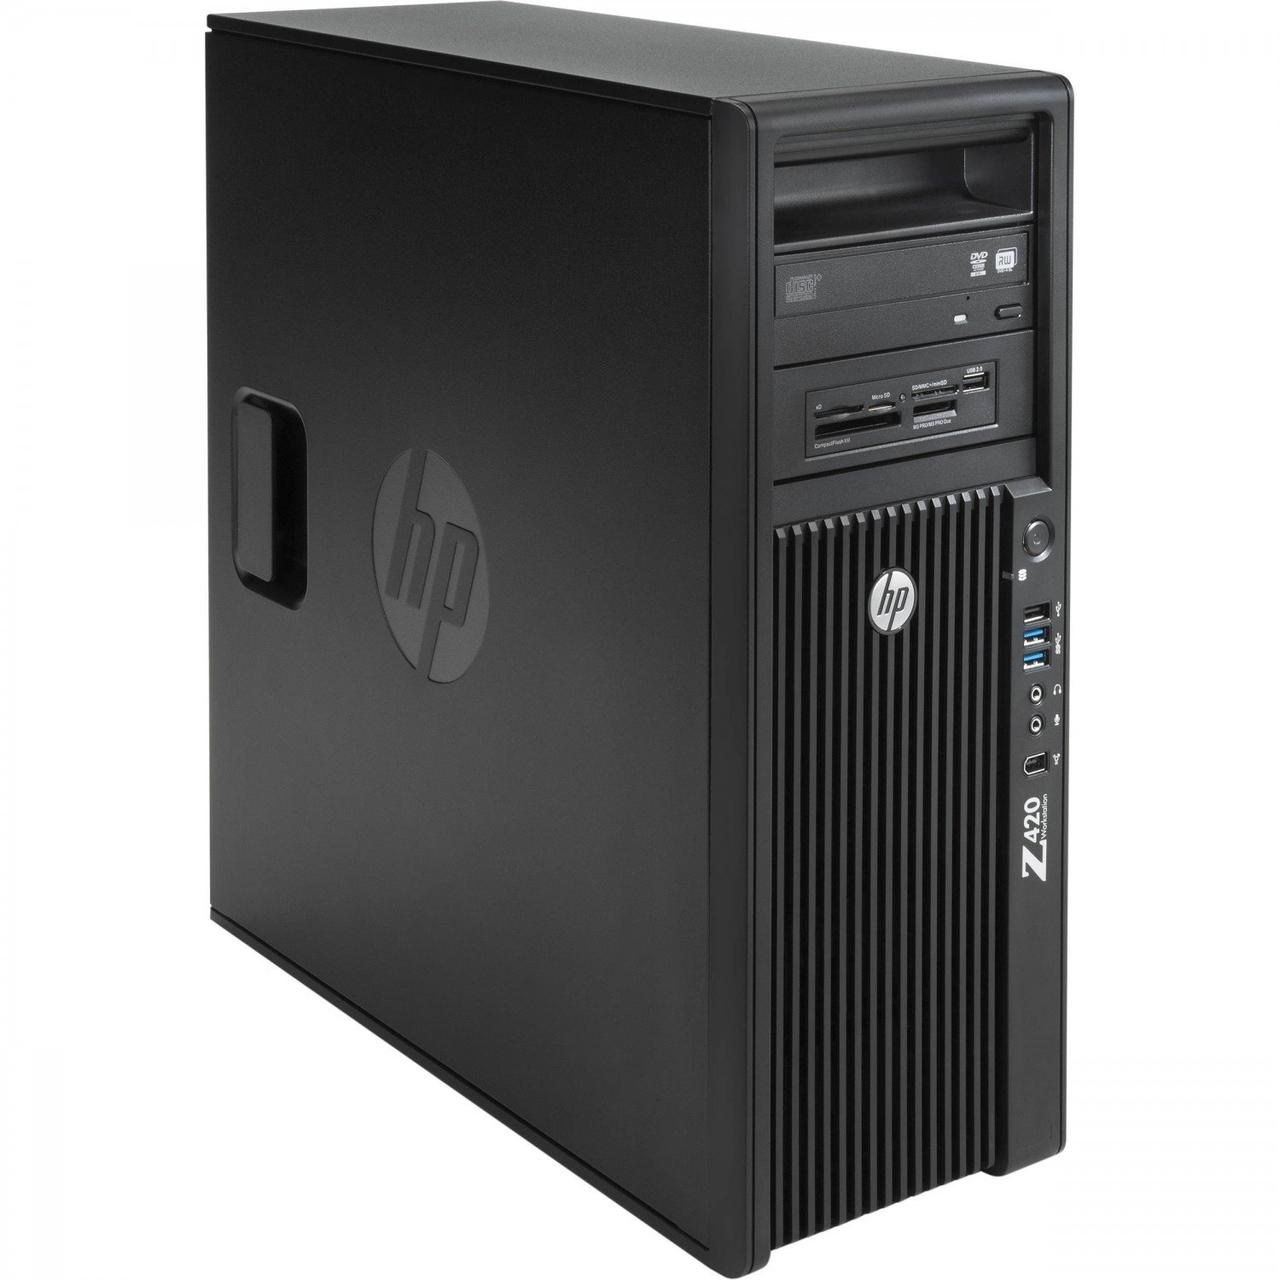 Системный блок HP Z440-Workstation-FT -Intel Xeon E5-1620v3-3,50GHz-16Gb-DDR4-256Gb-SSD-DVD-R+nVidia Quadro